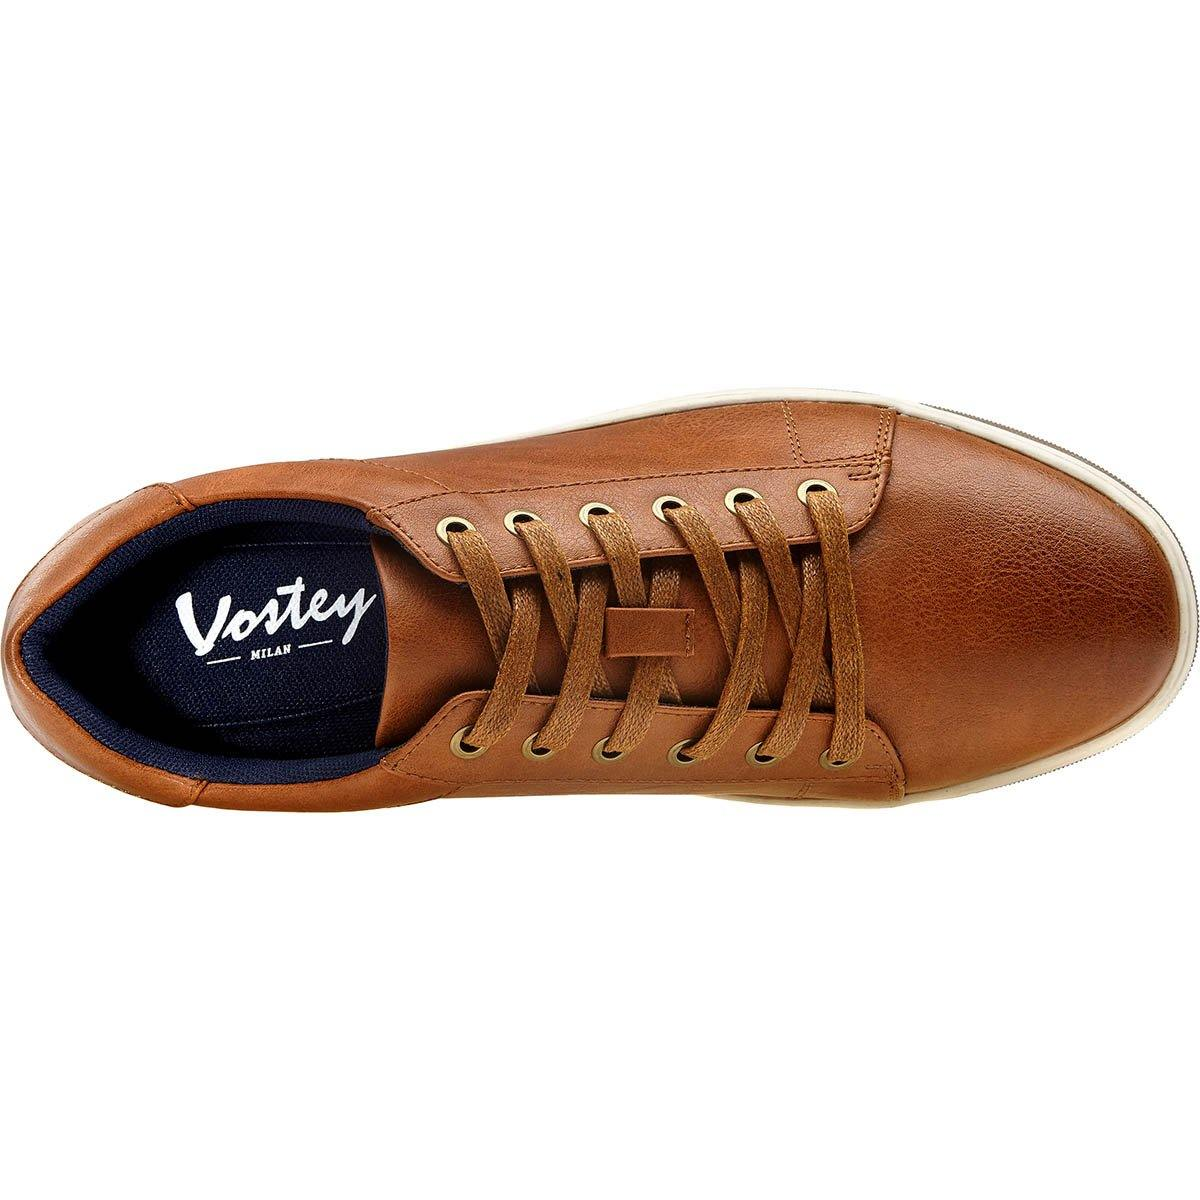 Fashion Casual Men Sneaker | Vostey - Top shoes club